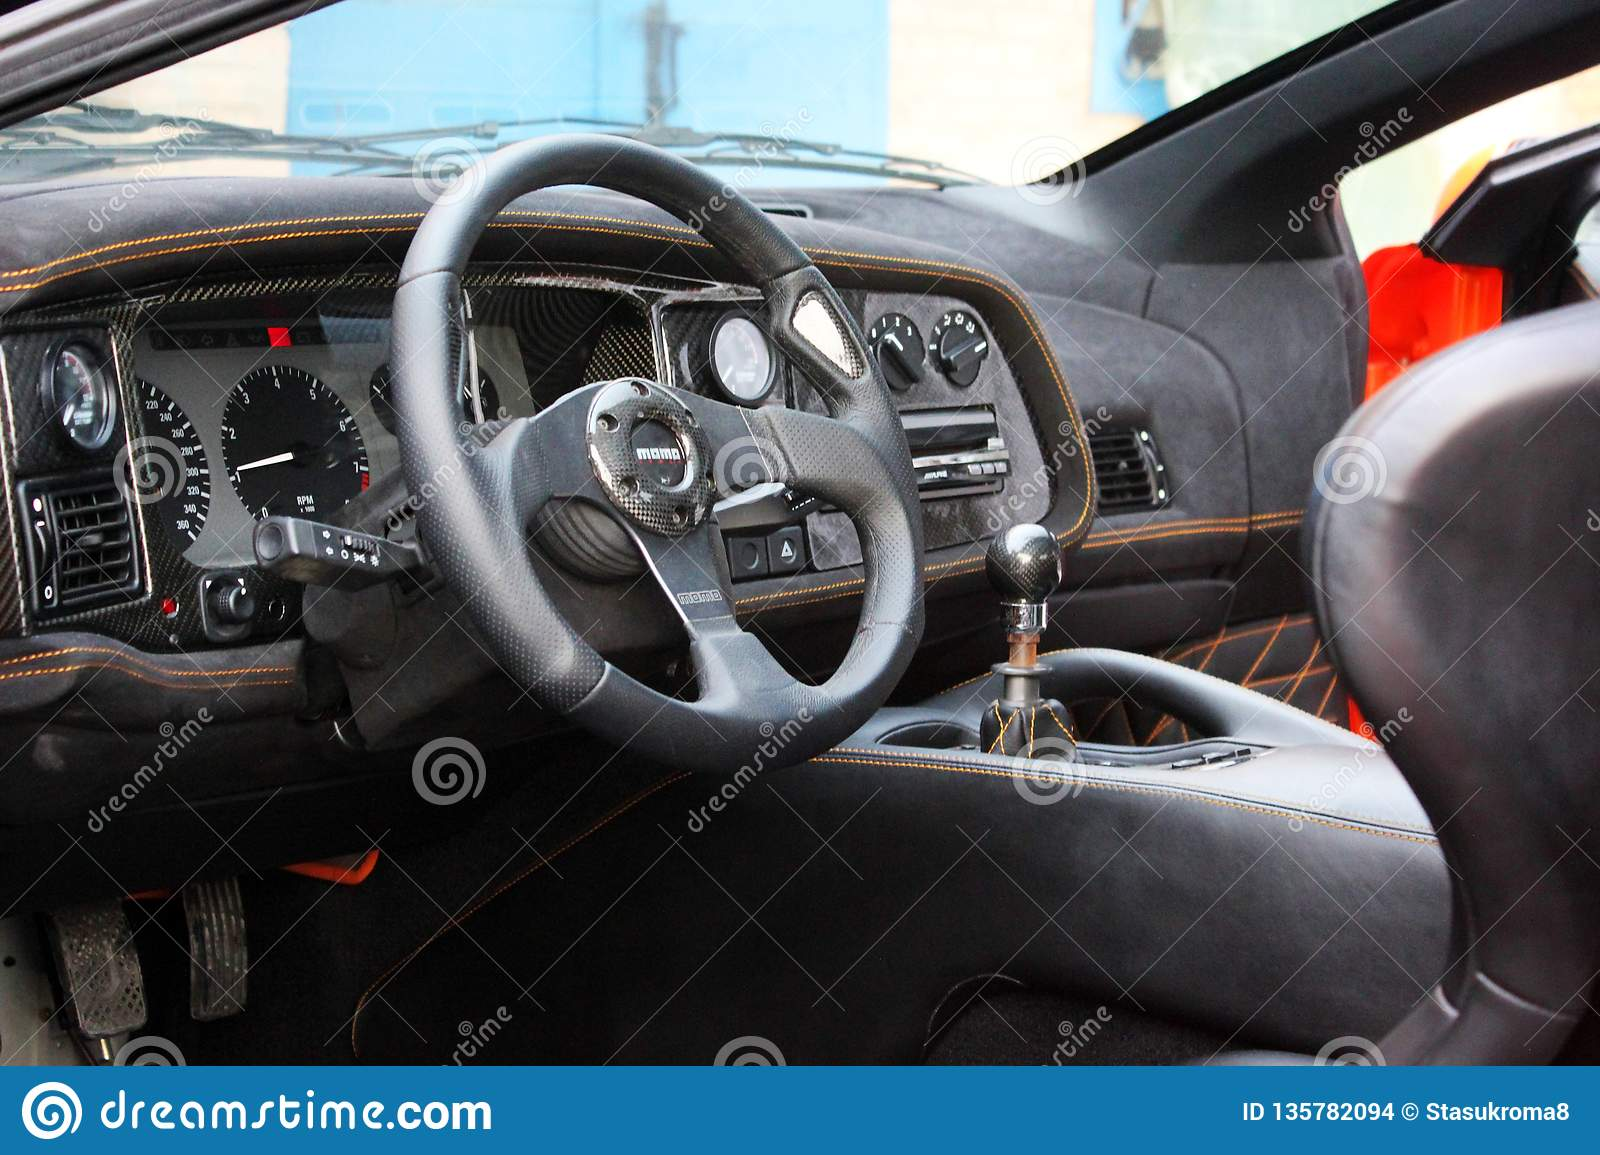 January 3 2013 Kiev Ukraine Jaguar Xj220 View Of The Interior Of A Modern Automobile Showing The Dashboard Editorial Stock Image Image Of Interior Black 135782094